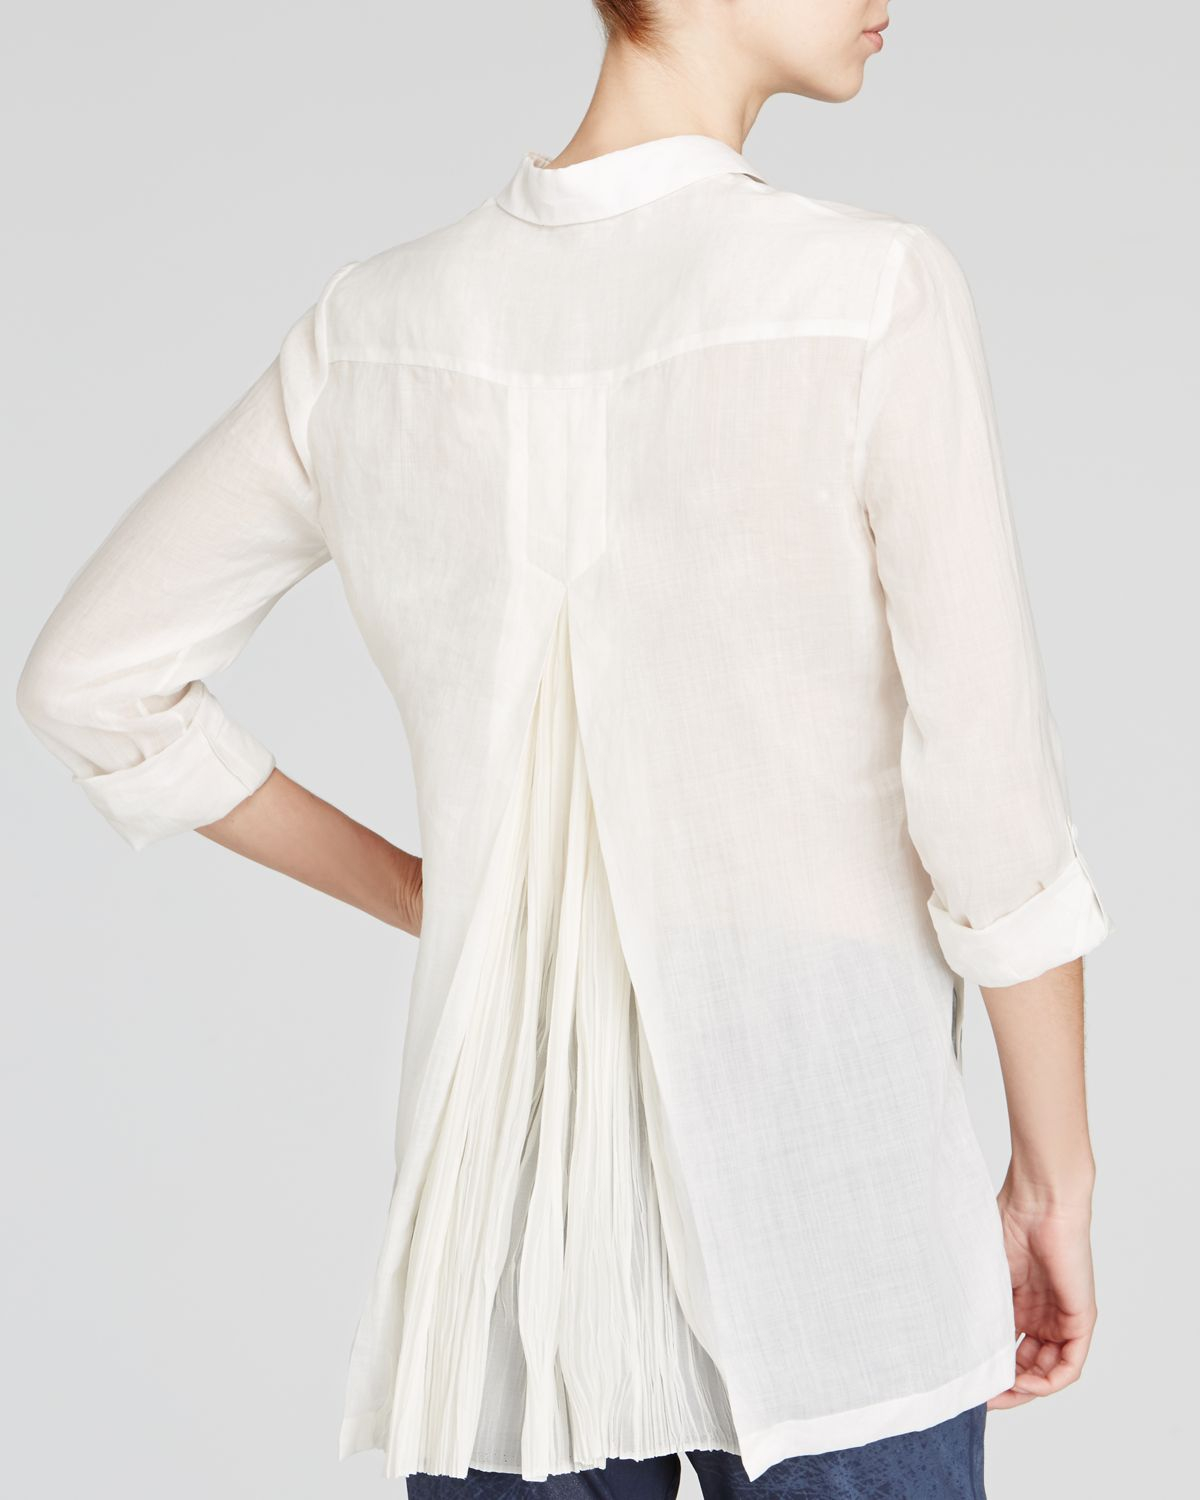 b59a91a487be Elie Tahari Carly Linen Pleat Back Shirt in White - Lyst